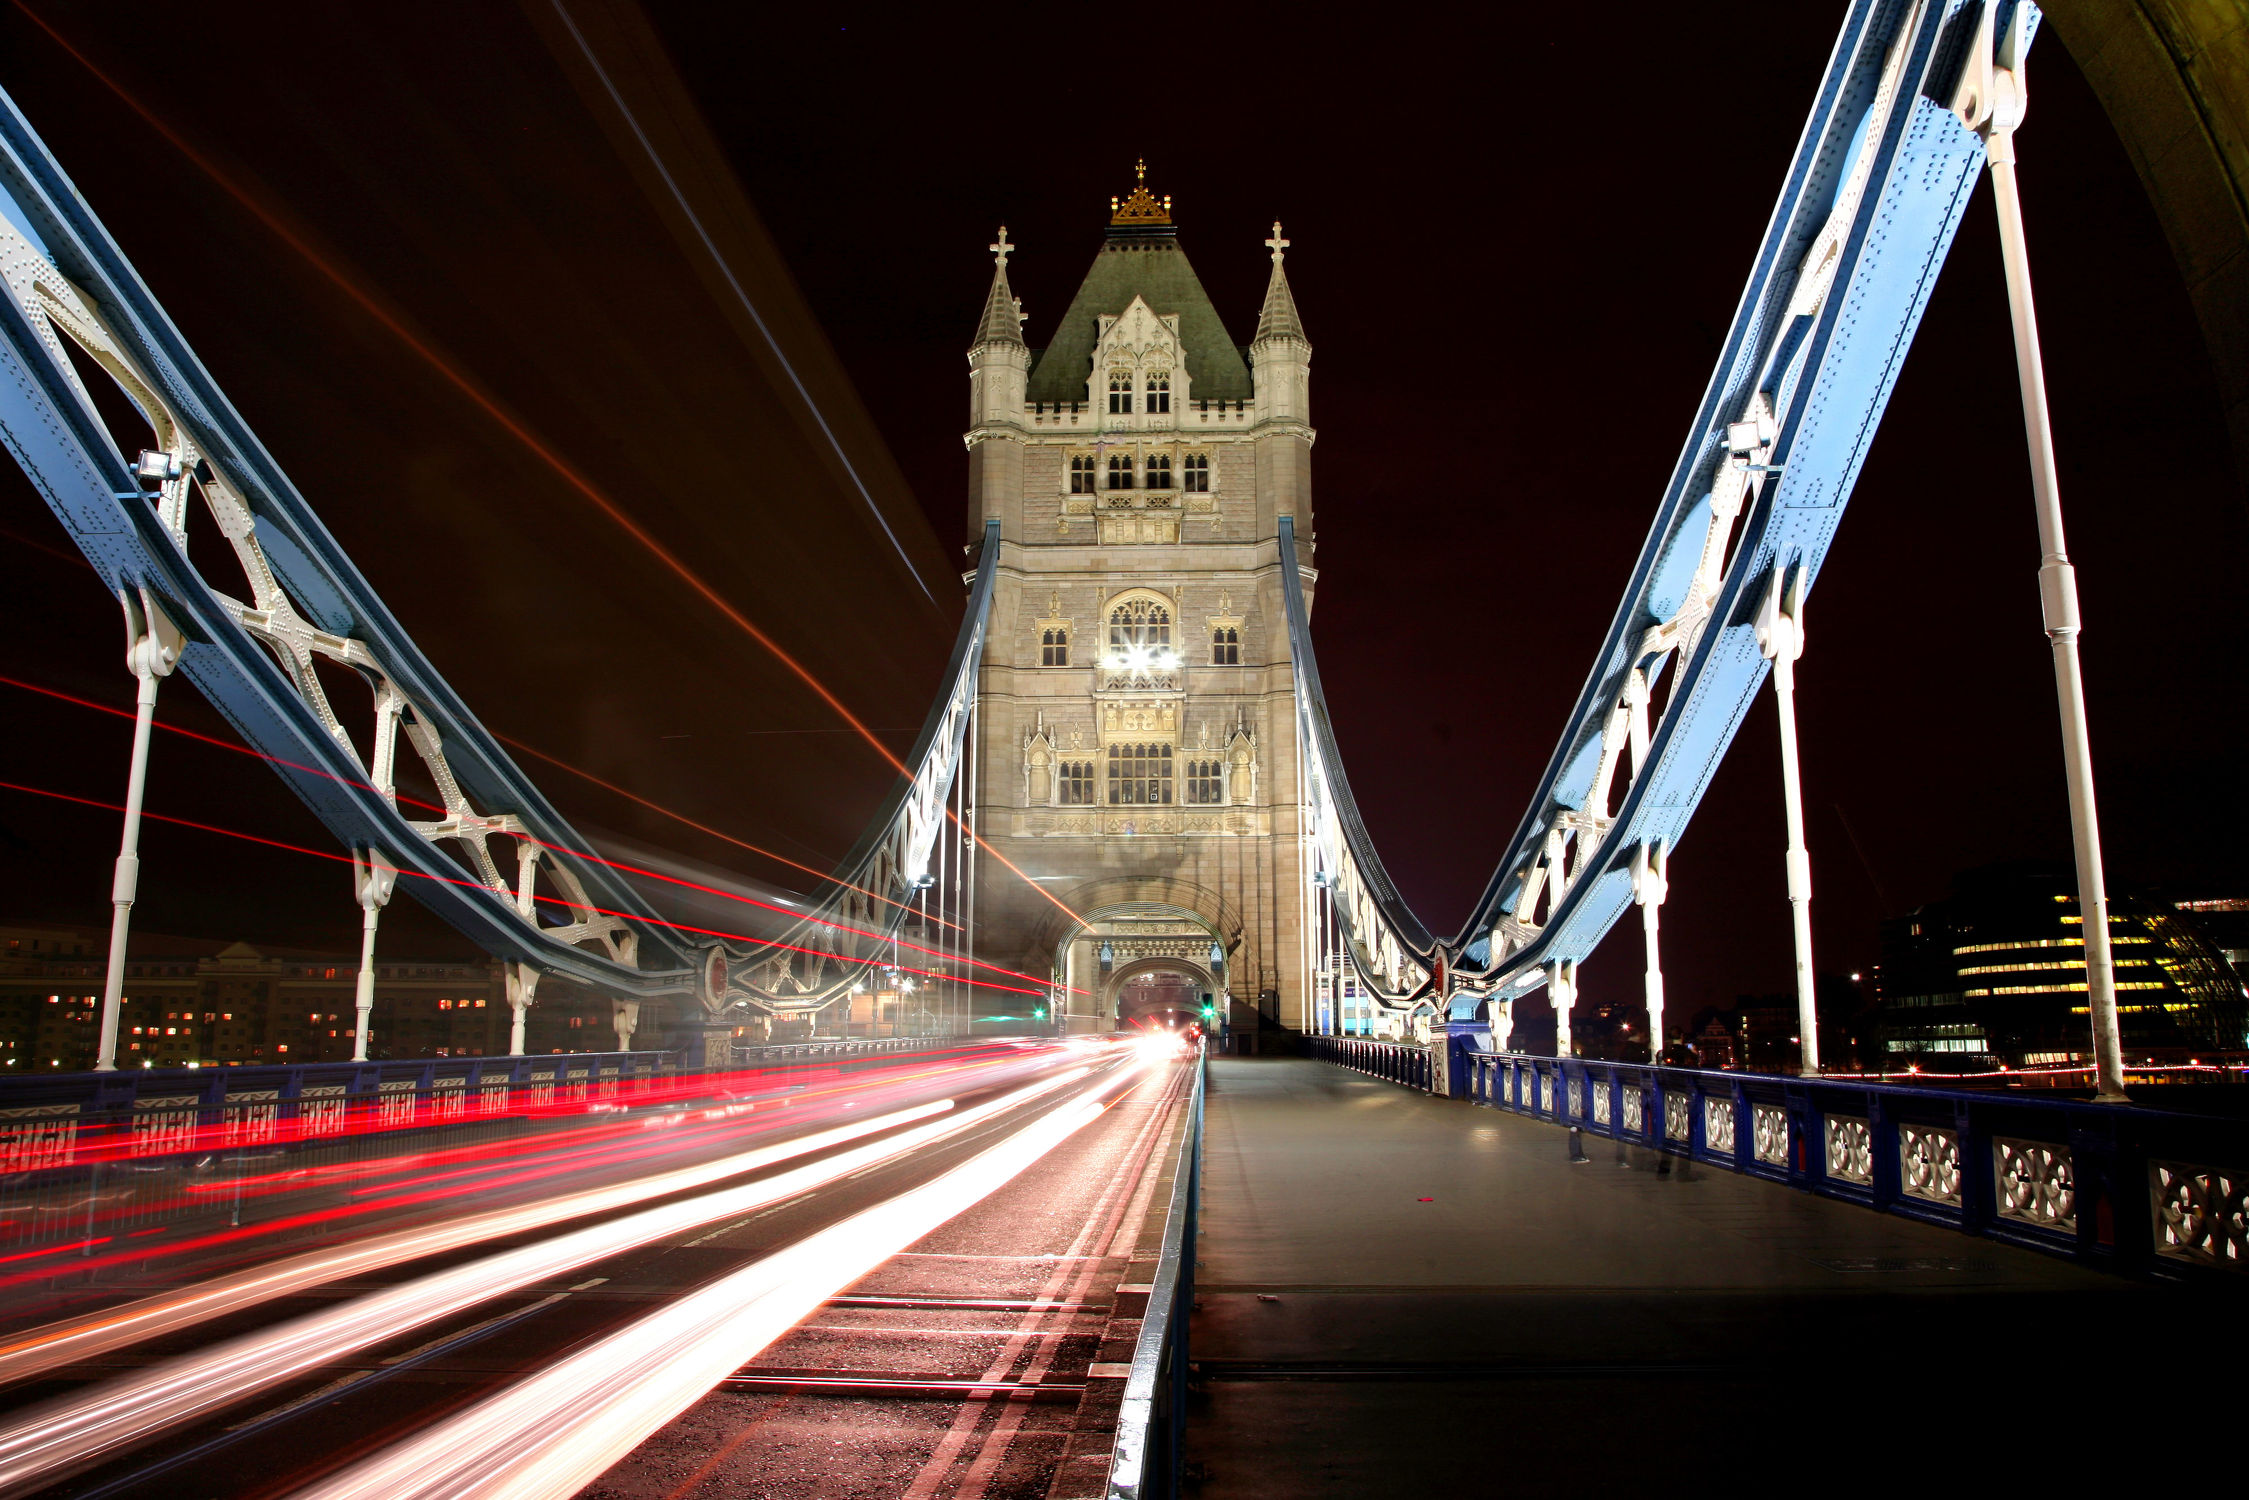 Bild mit Städte, England, London, Stadt, London Bridge, City, Nachtaufnahmen, Nacht, london tower bridge, Skyline, Stadtleben, night